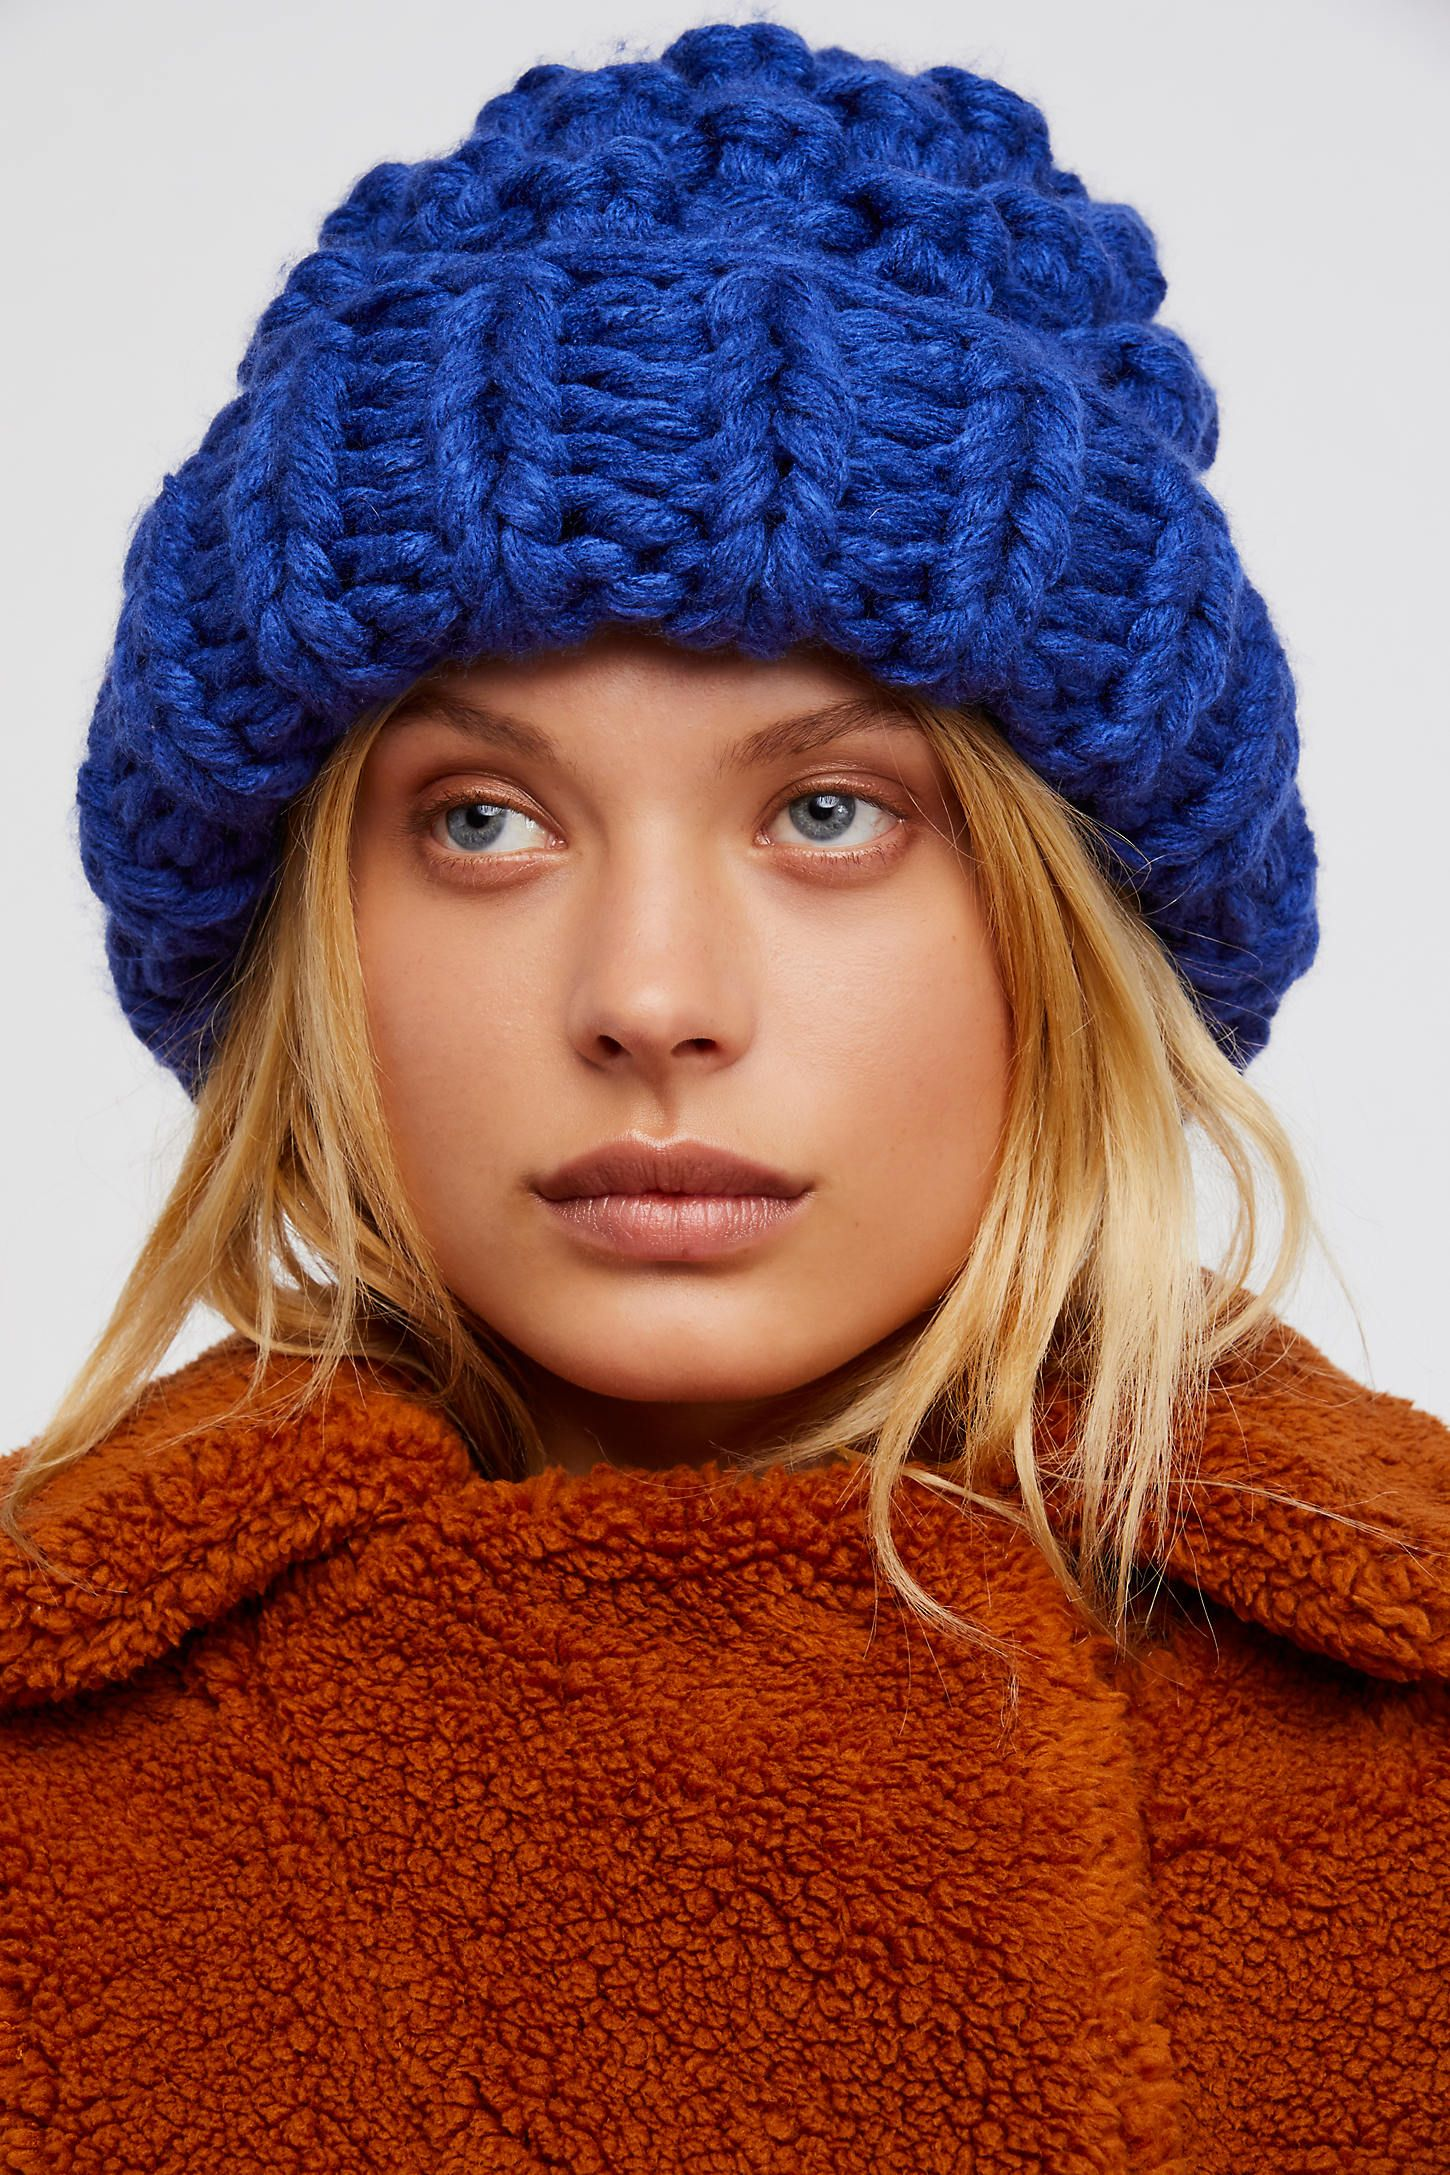 facb0d4c1bb Shop our Chunky Bobble Knit Beanie at Urban Outfitters today. We carry all  the latest styles